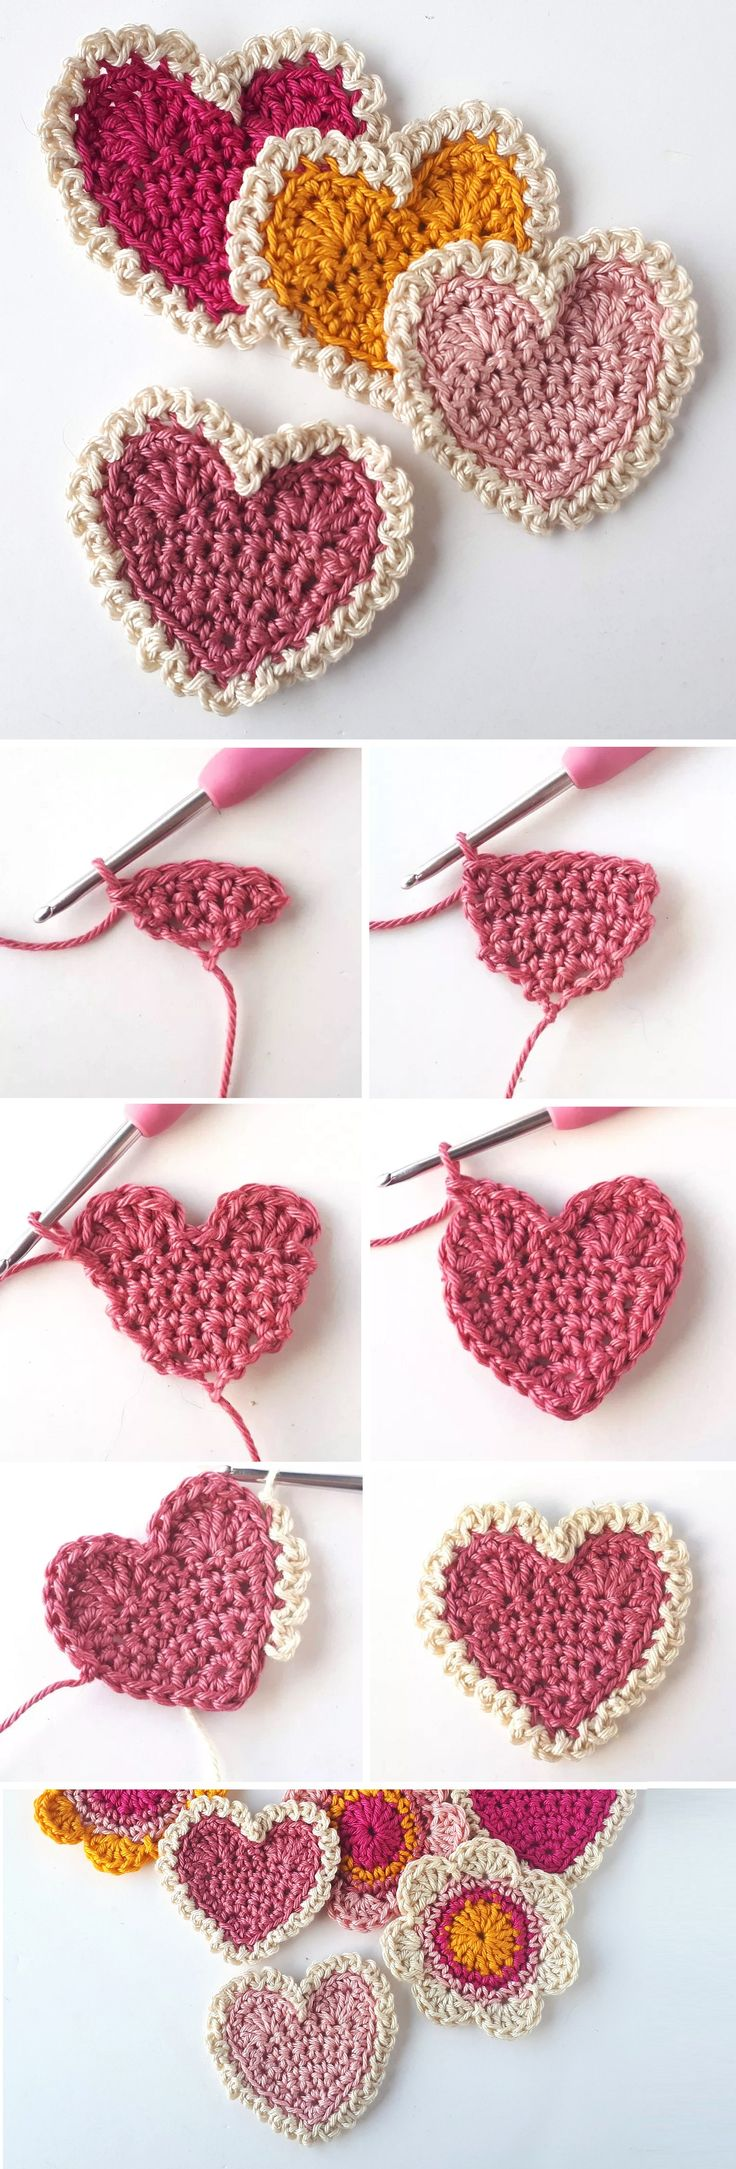 Crochet Heart – Simple Tutorial